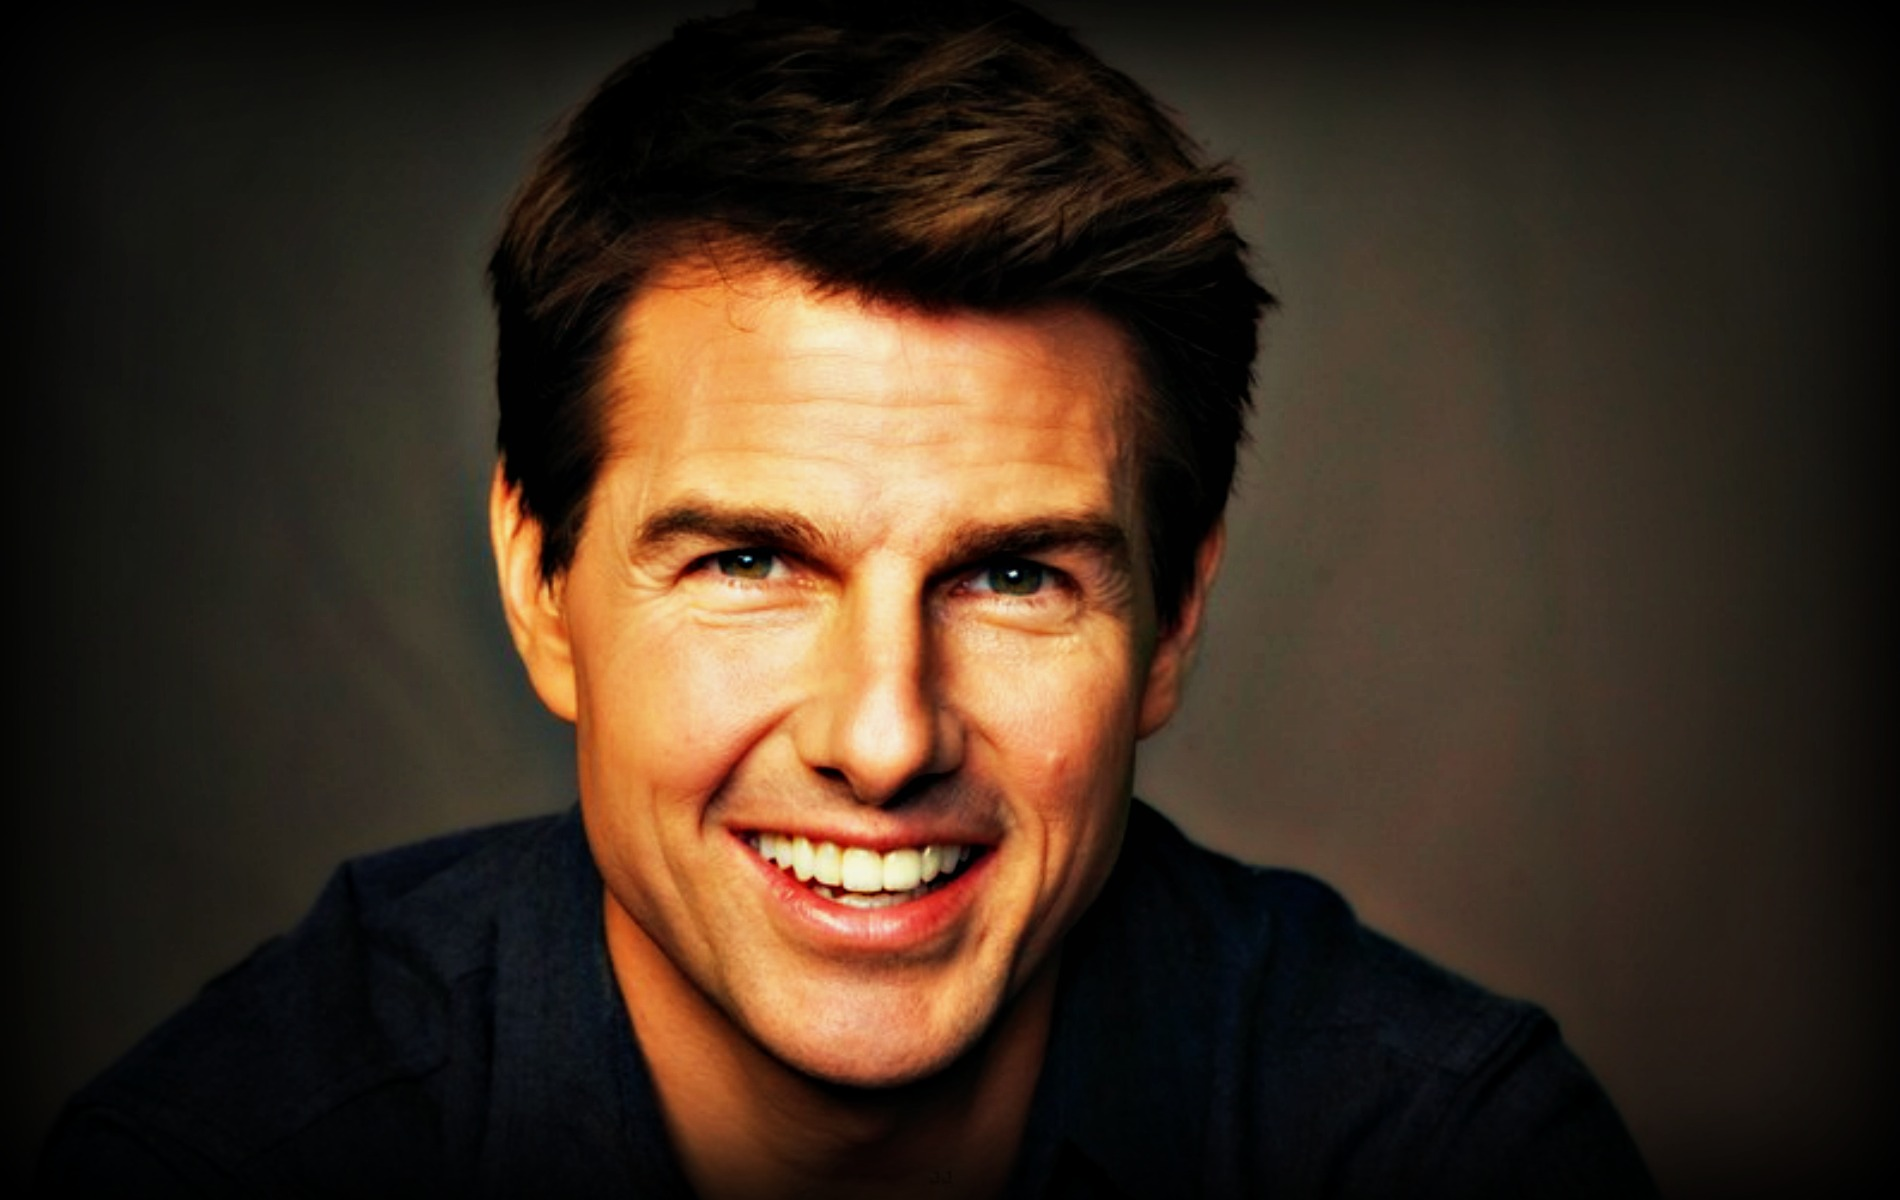 Tom Cruise Wallpapers High Resolution and Quality DownloadTom Cruise 1900x1200